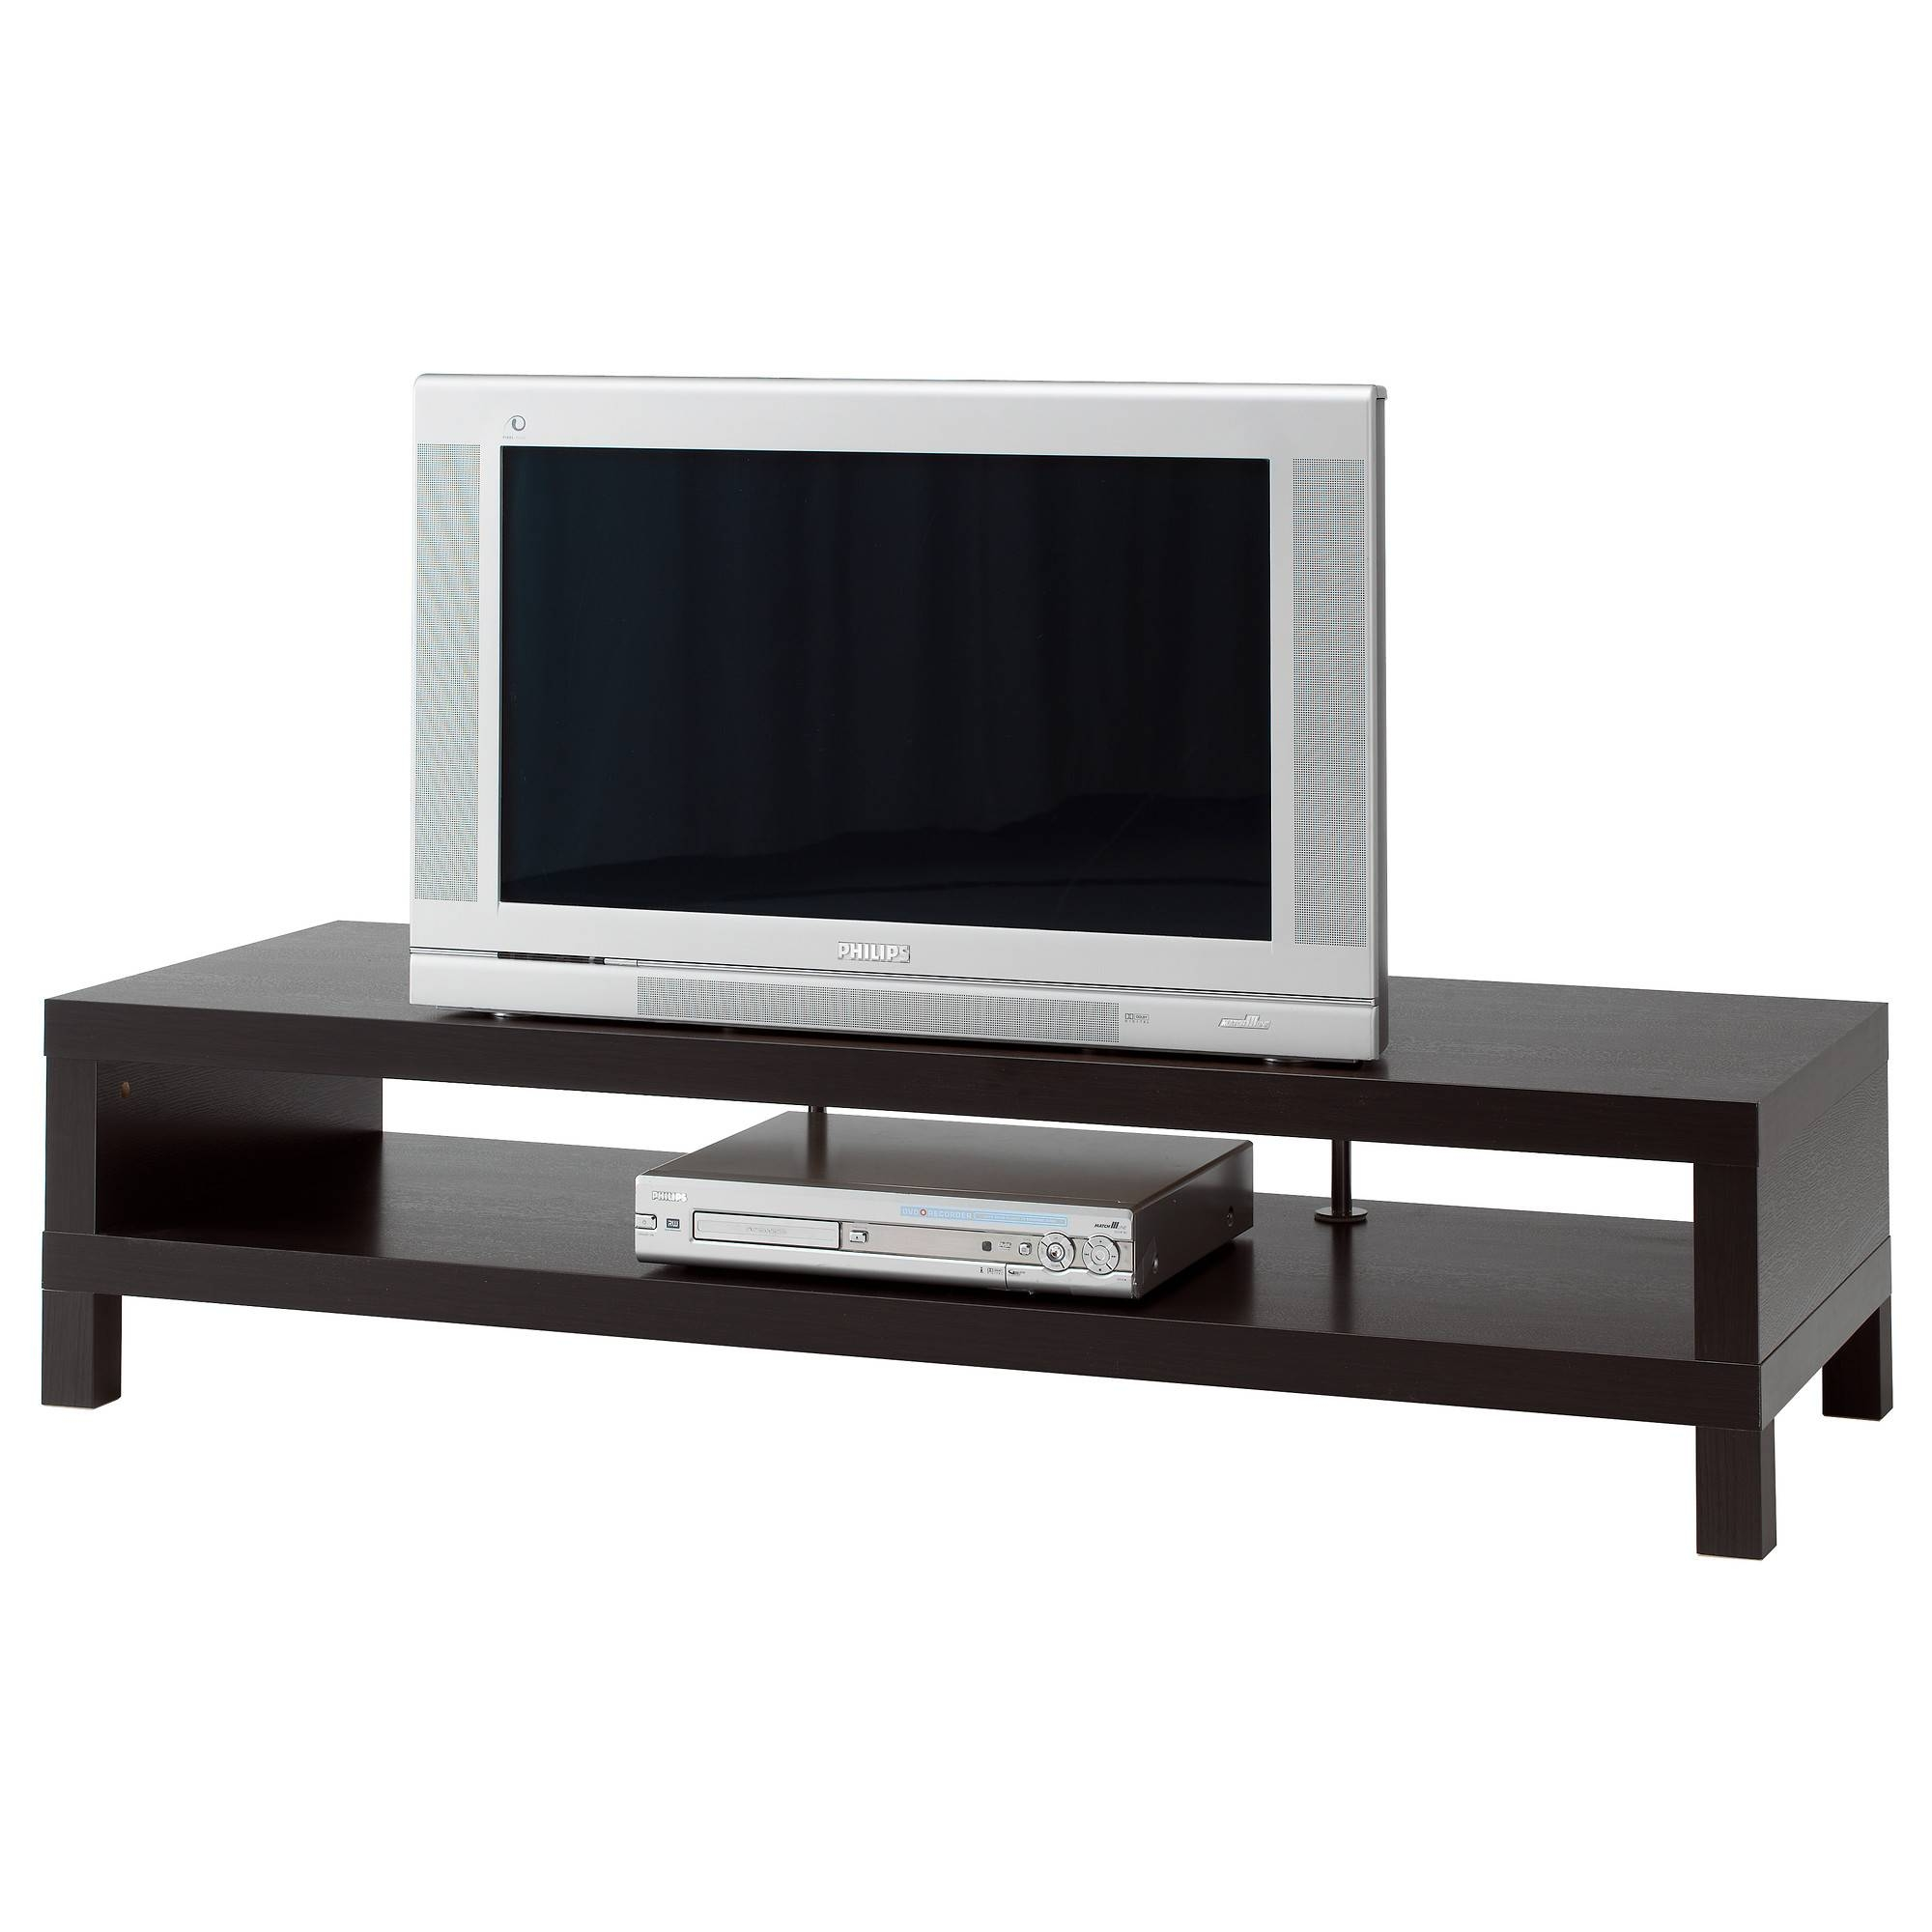 Lack Tv Unit – Ikea Throughout Tv Stands 38 Inches Wide (View 13 of 15)